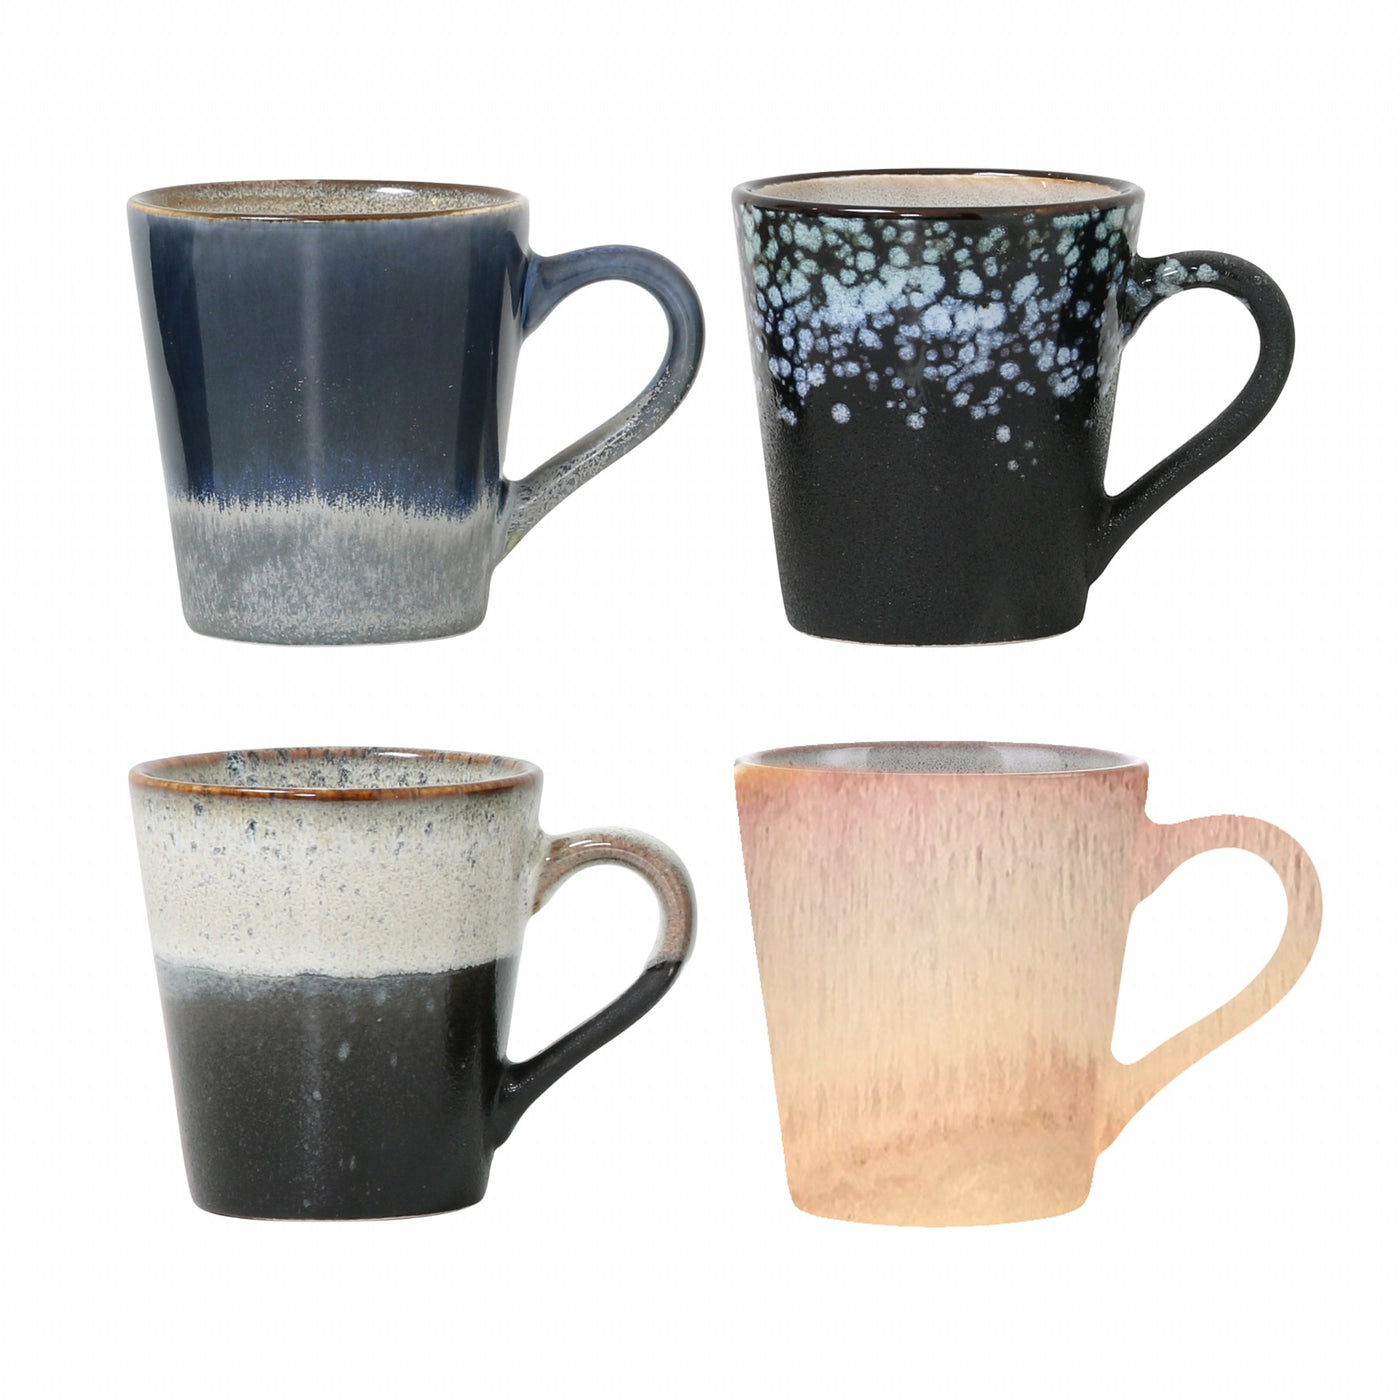 Ceramic 70's Espresso Mugs (set of 4)